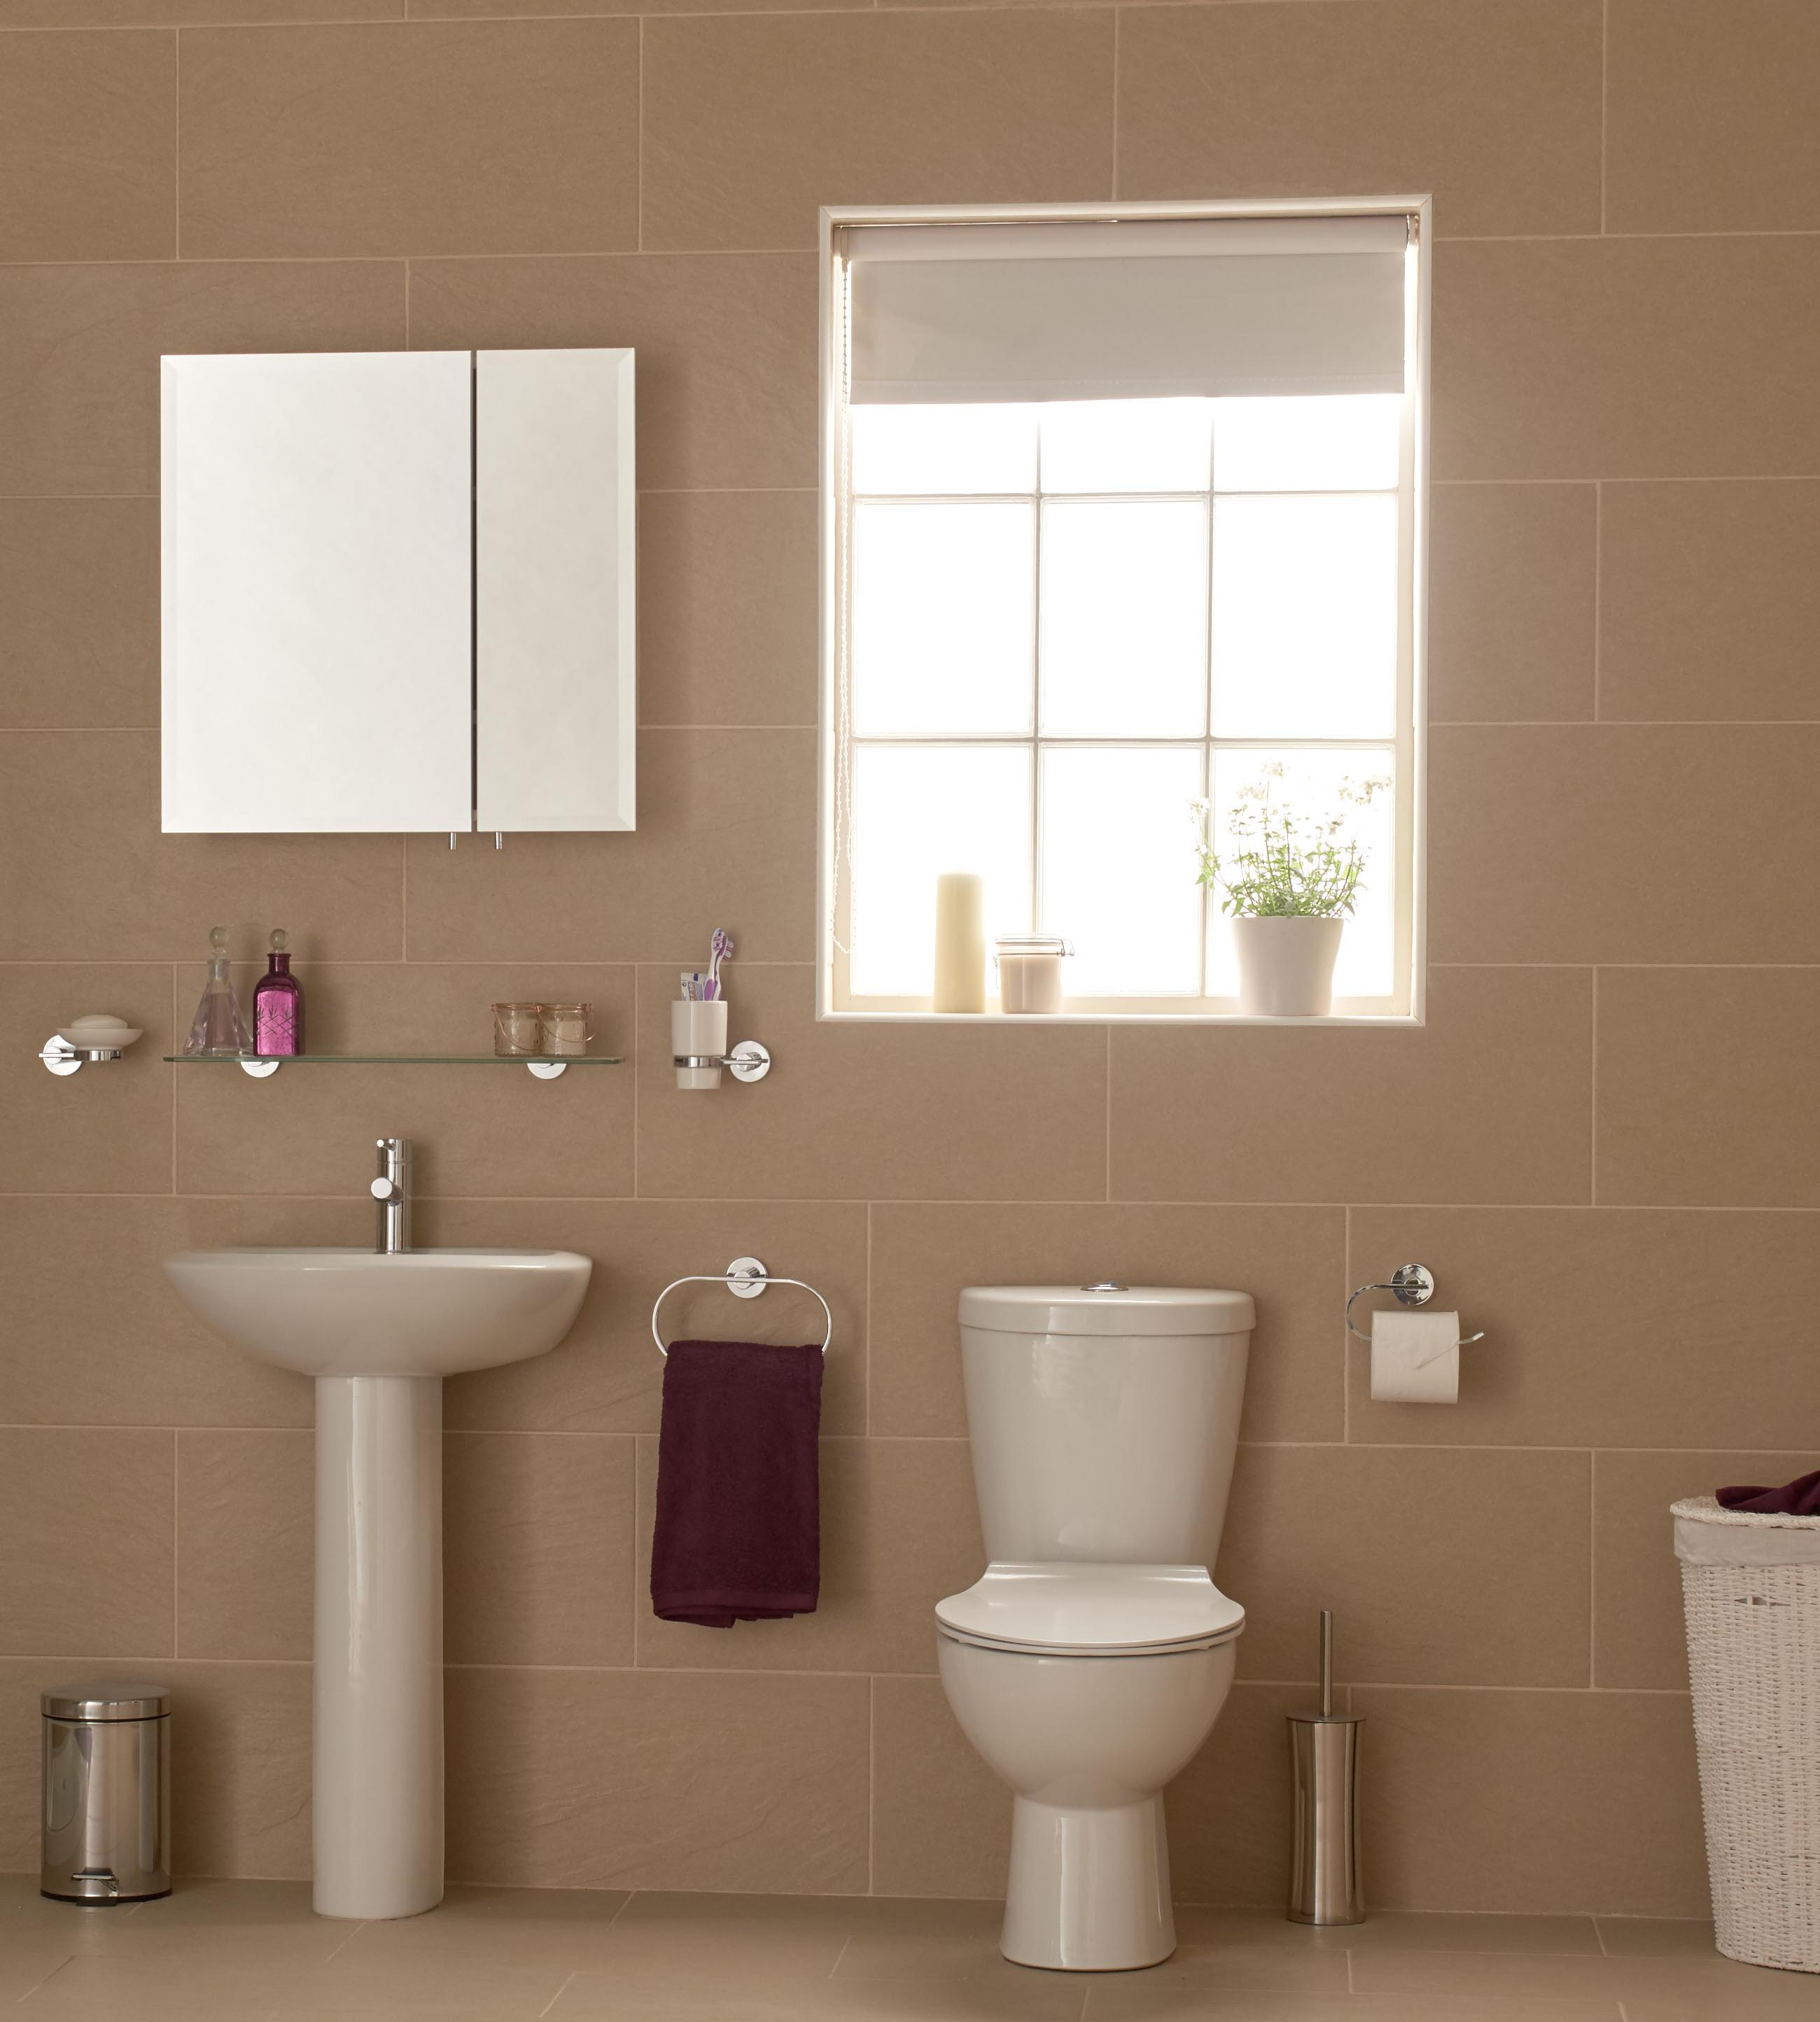 Bring the outdoors into your bathroom!